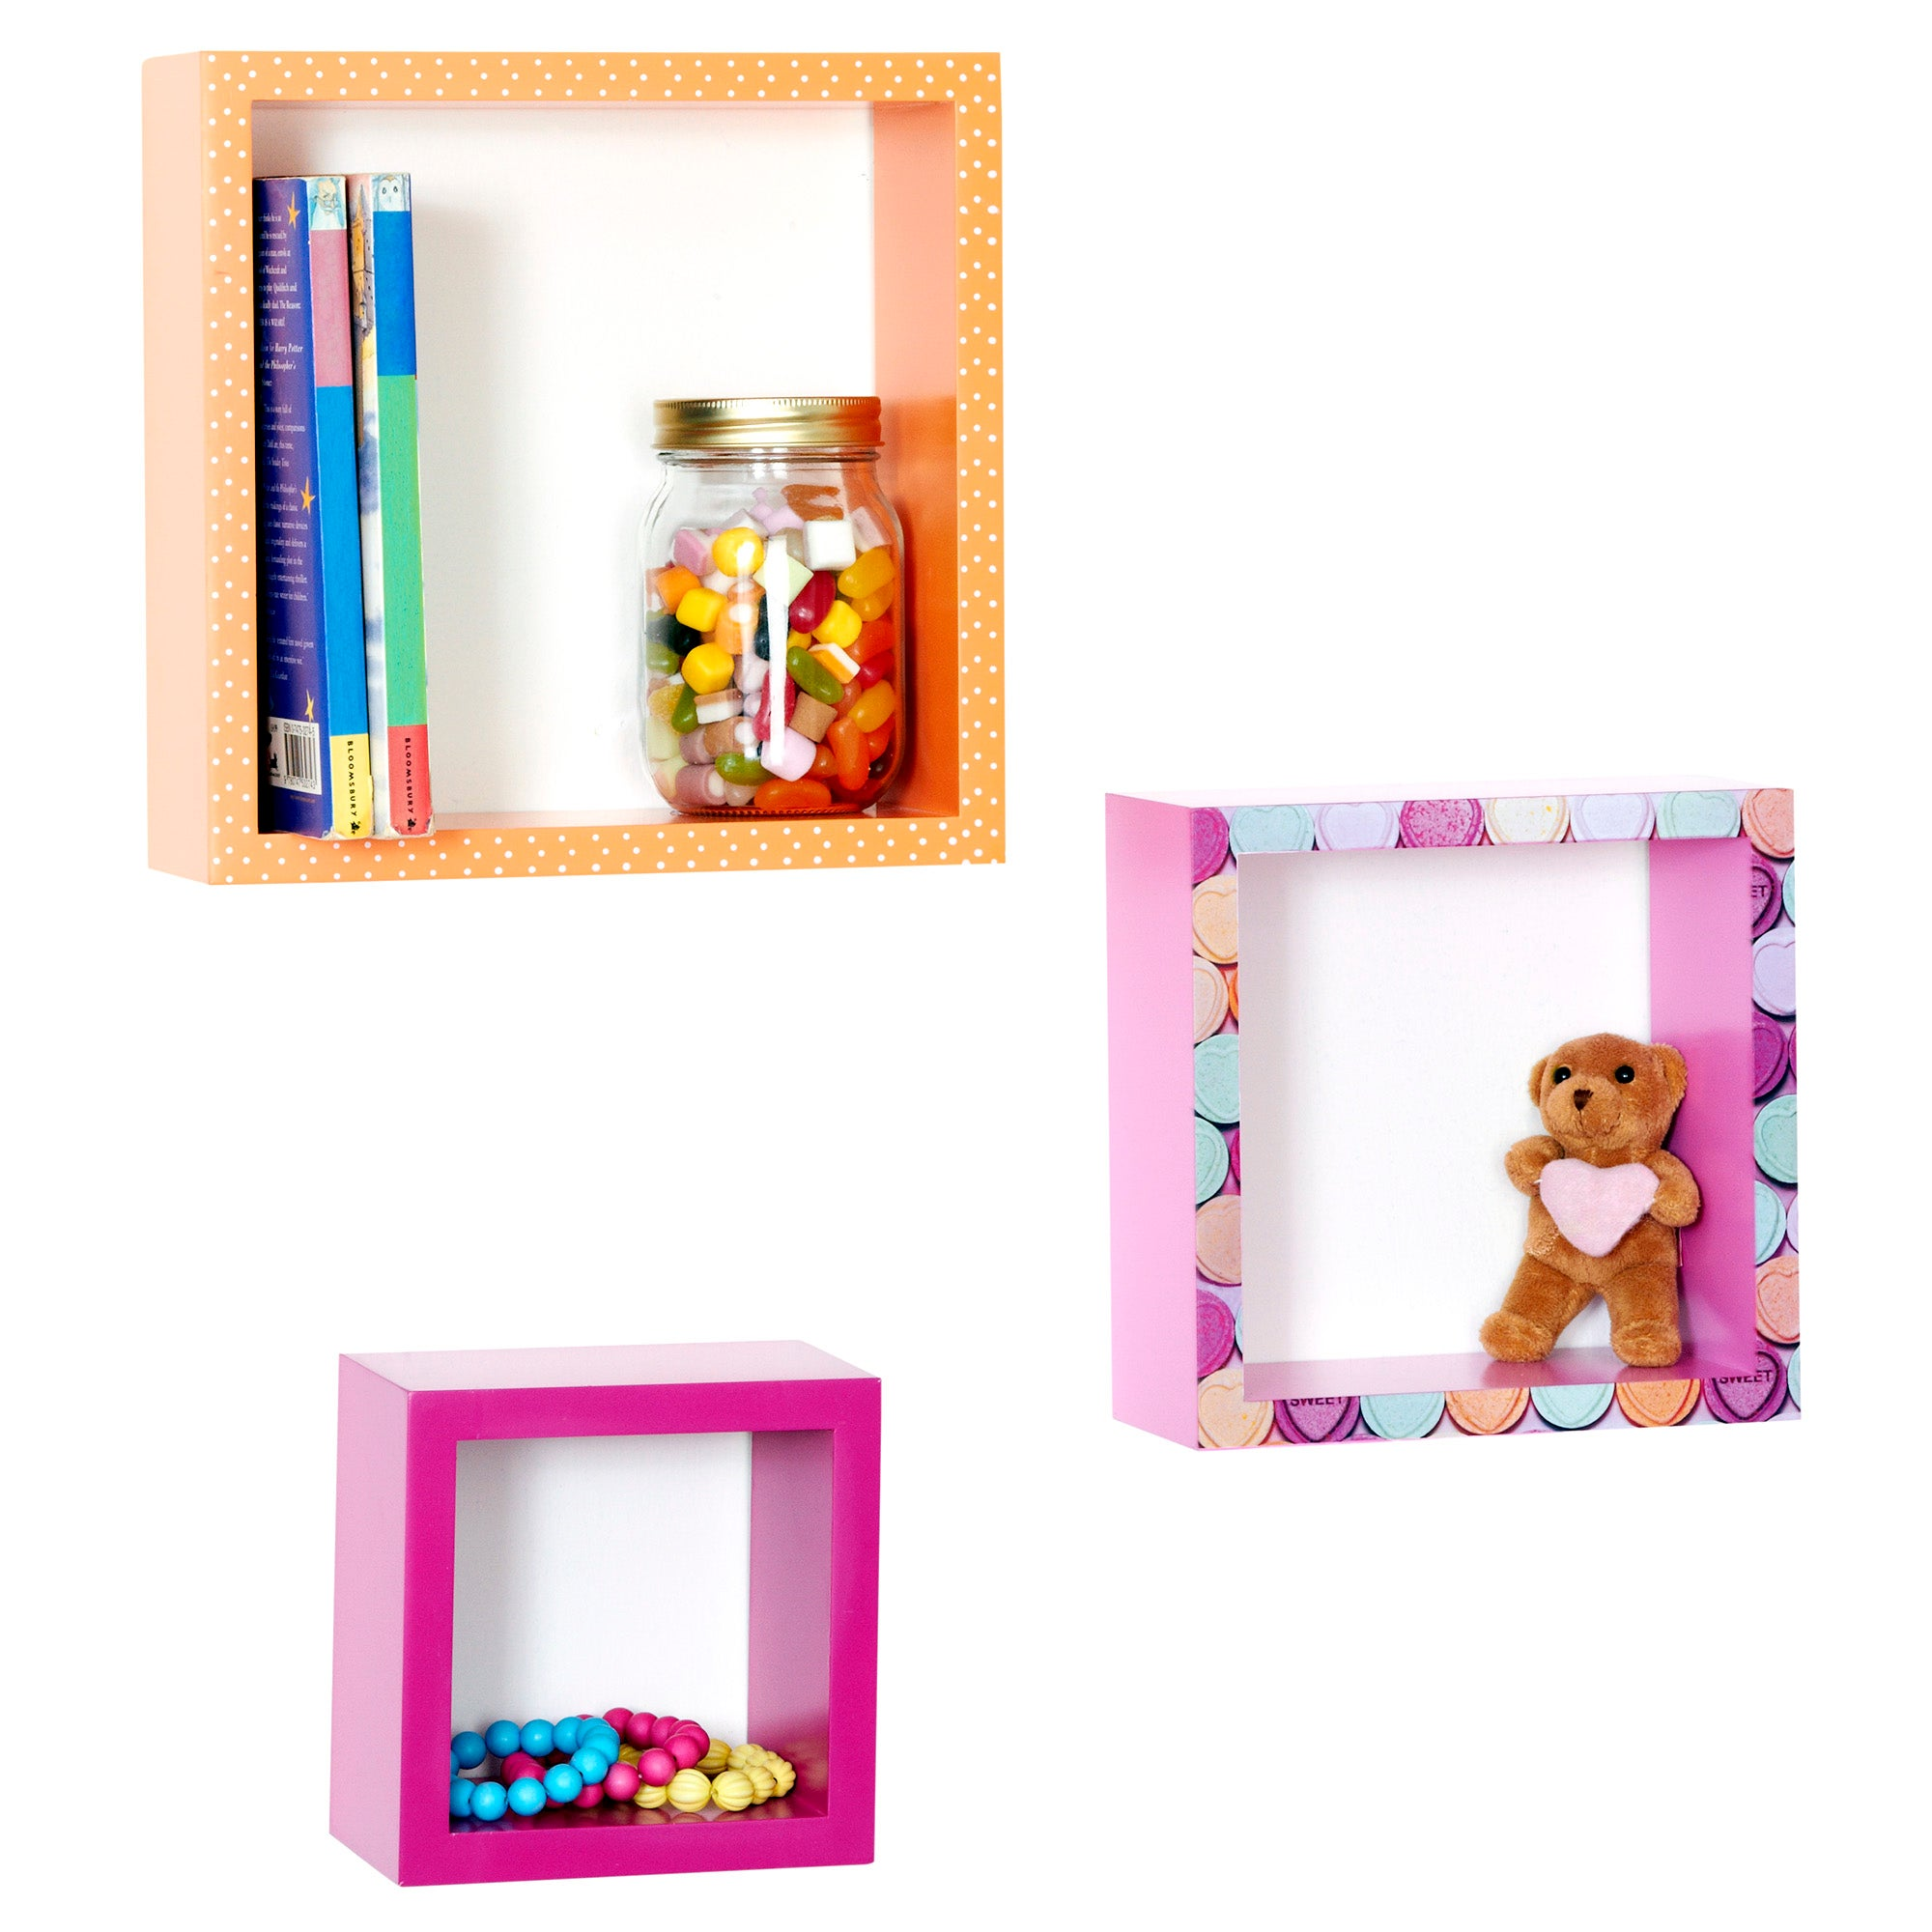 Kids Sweetie Loveheart Collection 3 Box Shelves